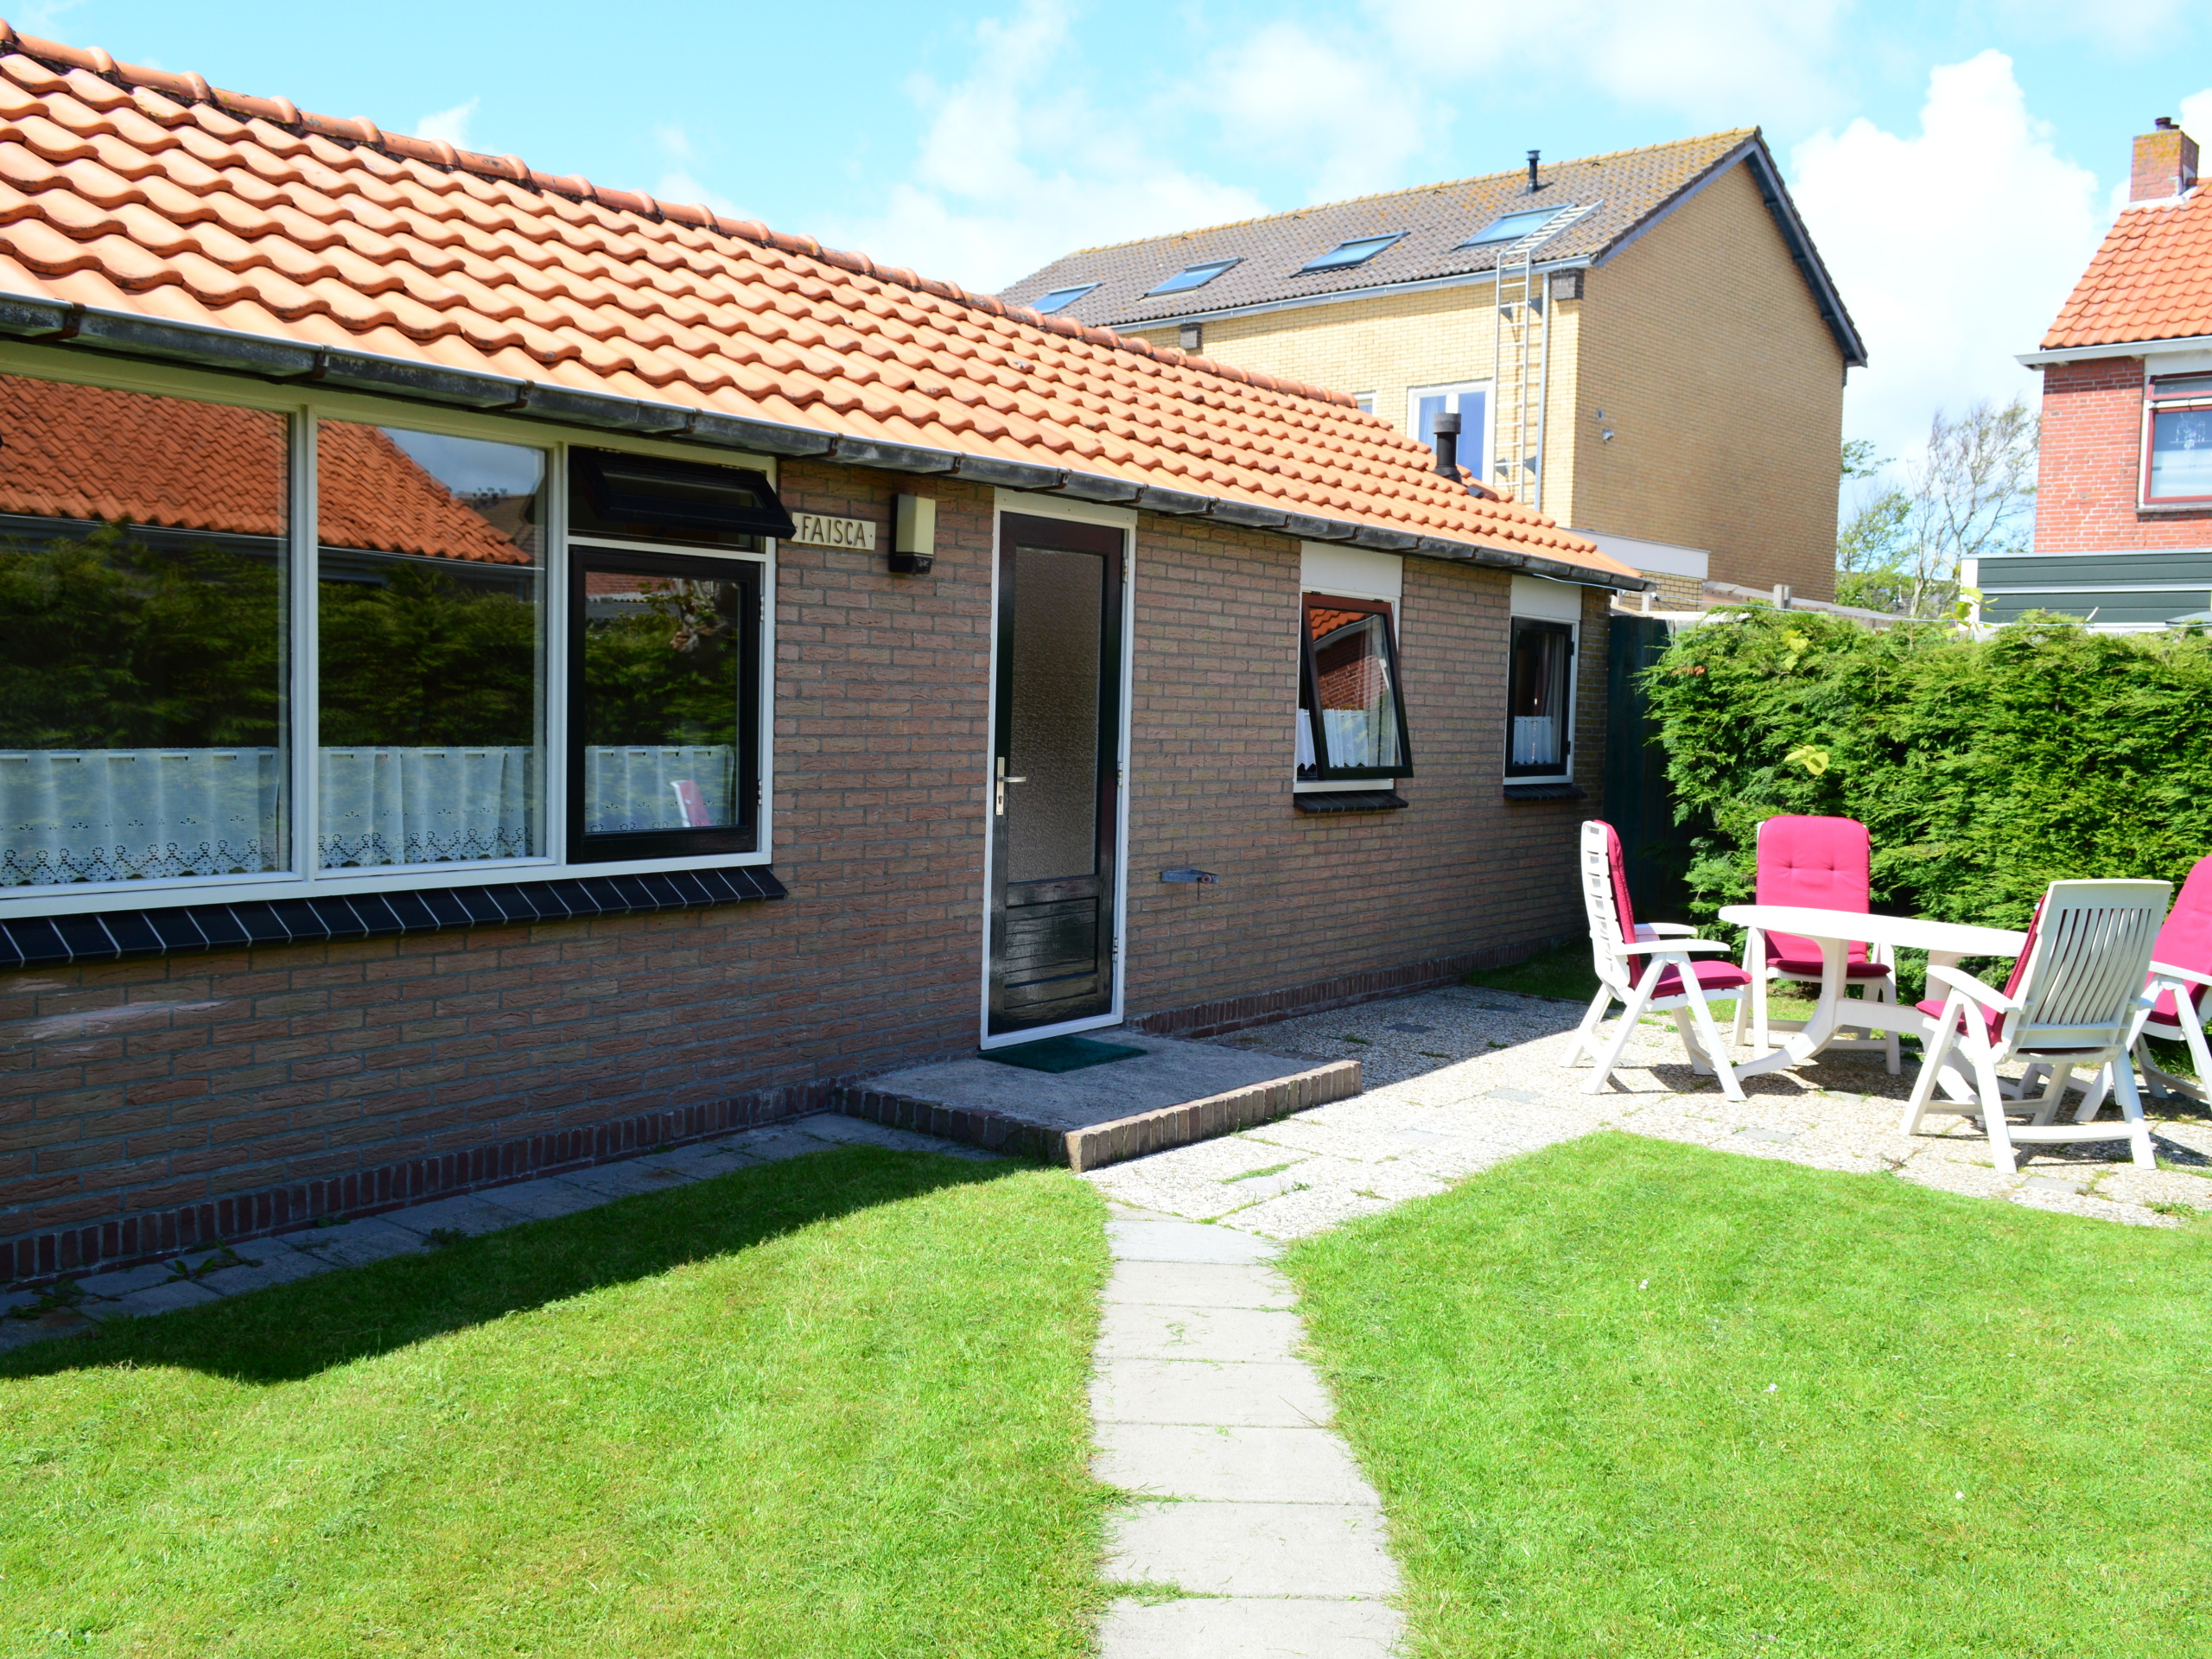 Cozy holiday home with the beach in your backyard in the middle of De Koog with its own parking space